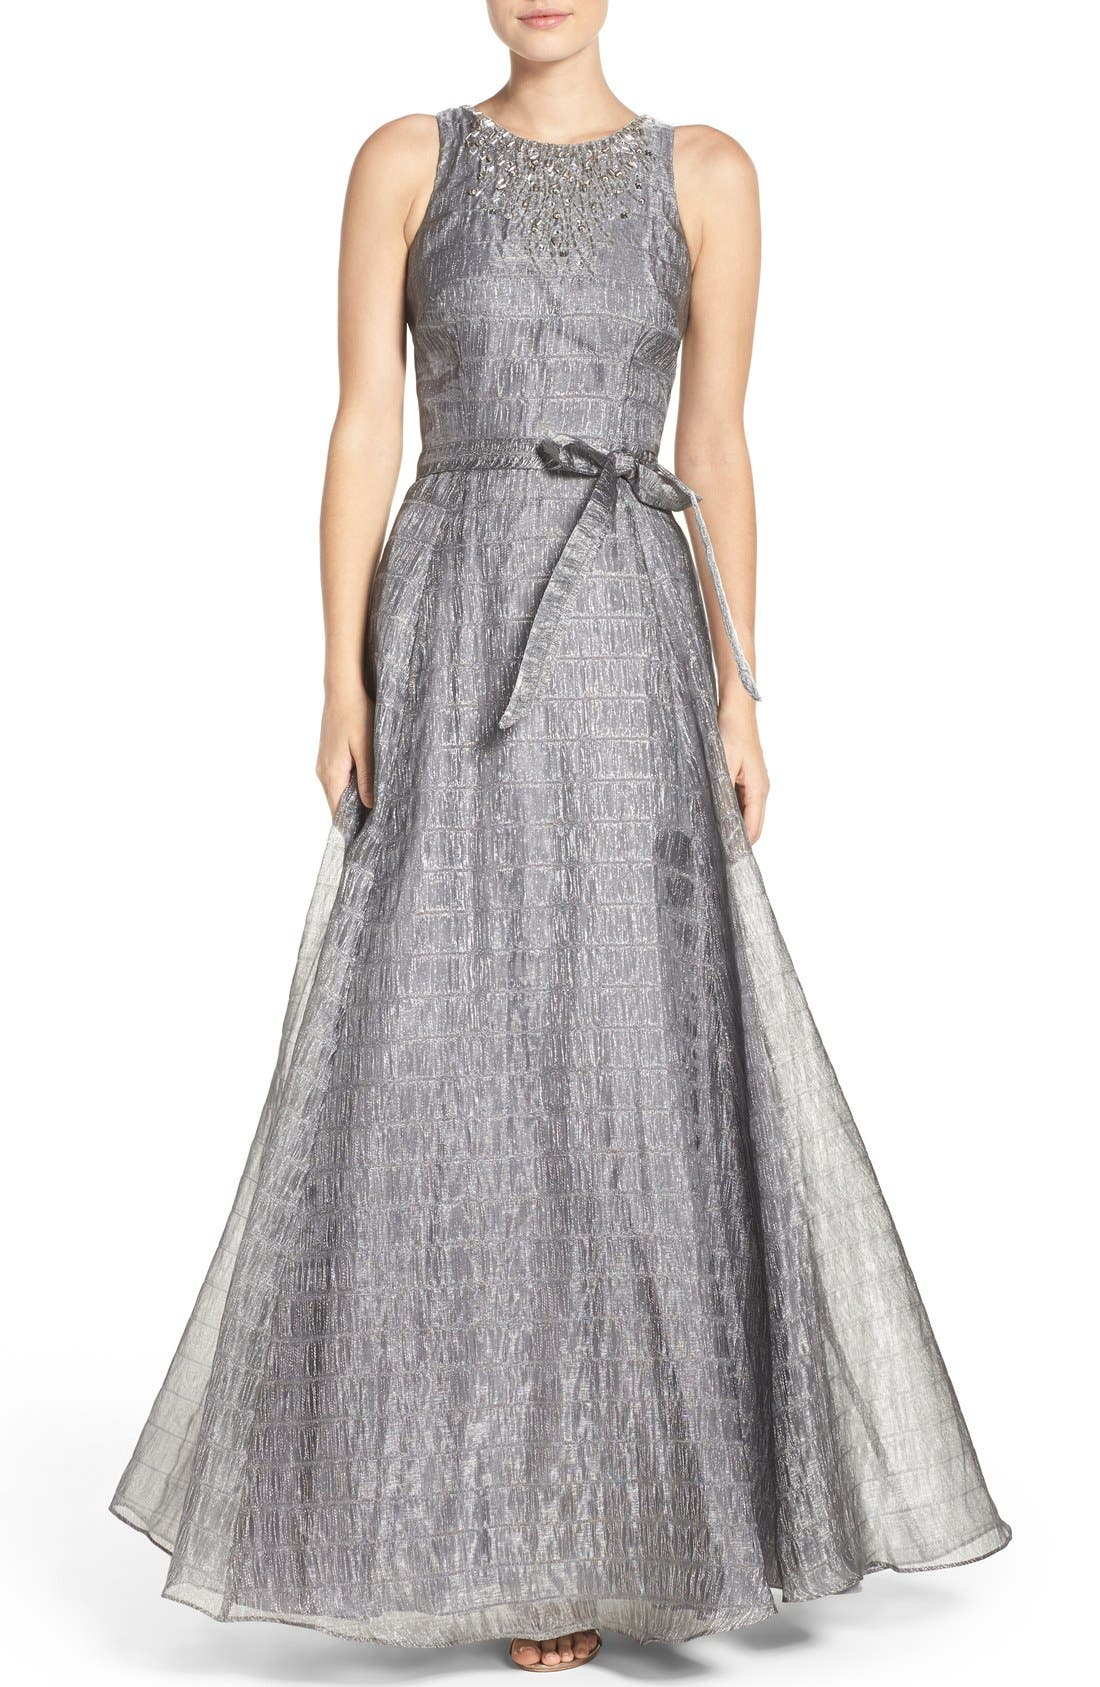 Main Image - Aidan Mattox Beaded Metallic Organza Gown